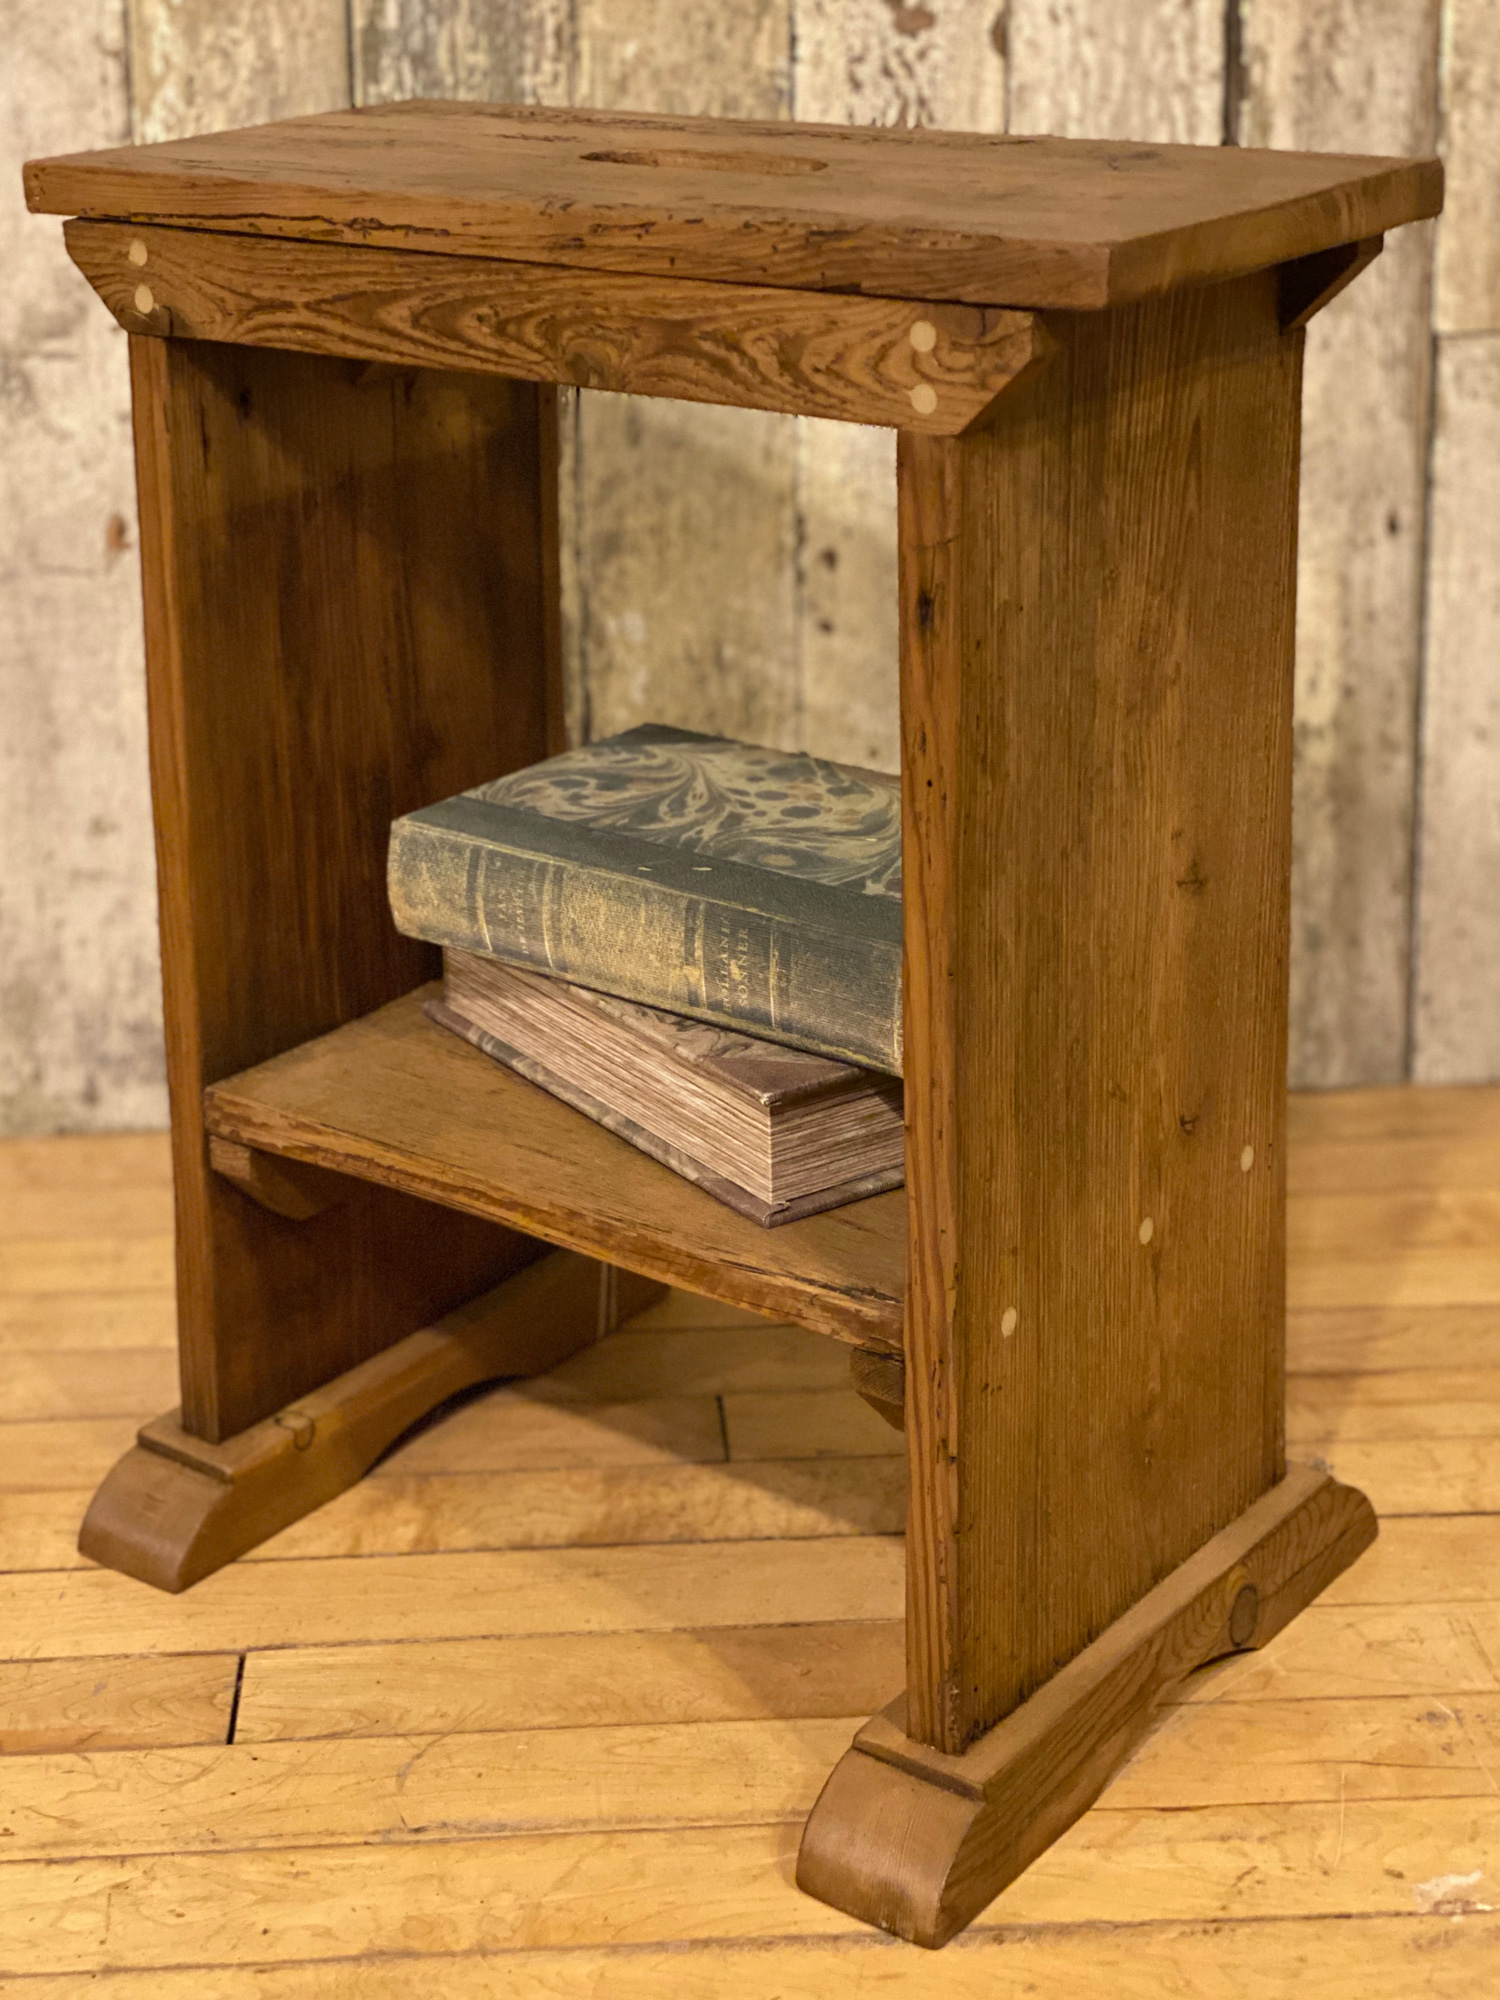 Reclaimed pine stool with books on base